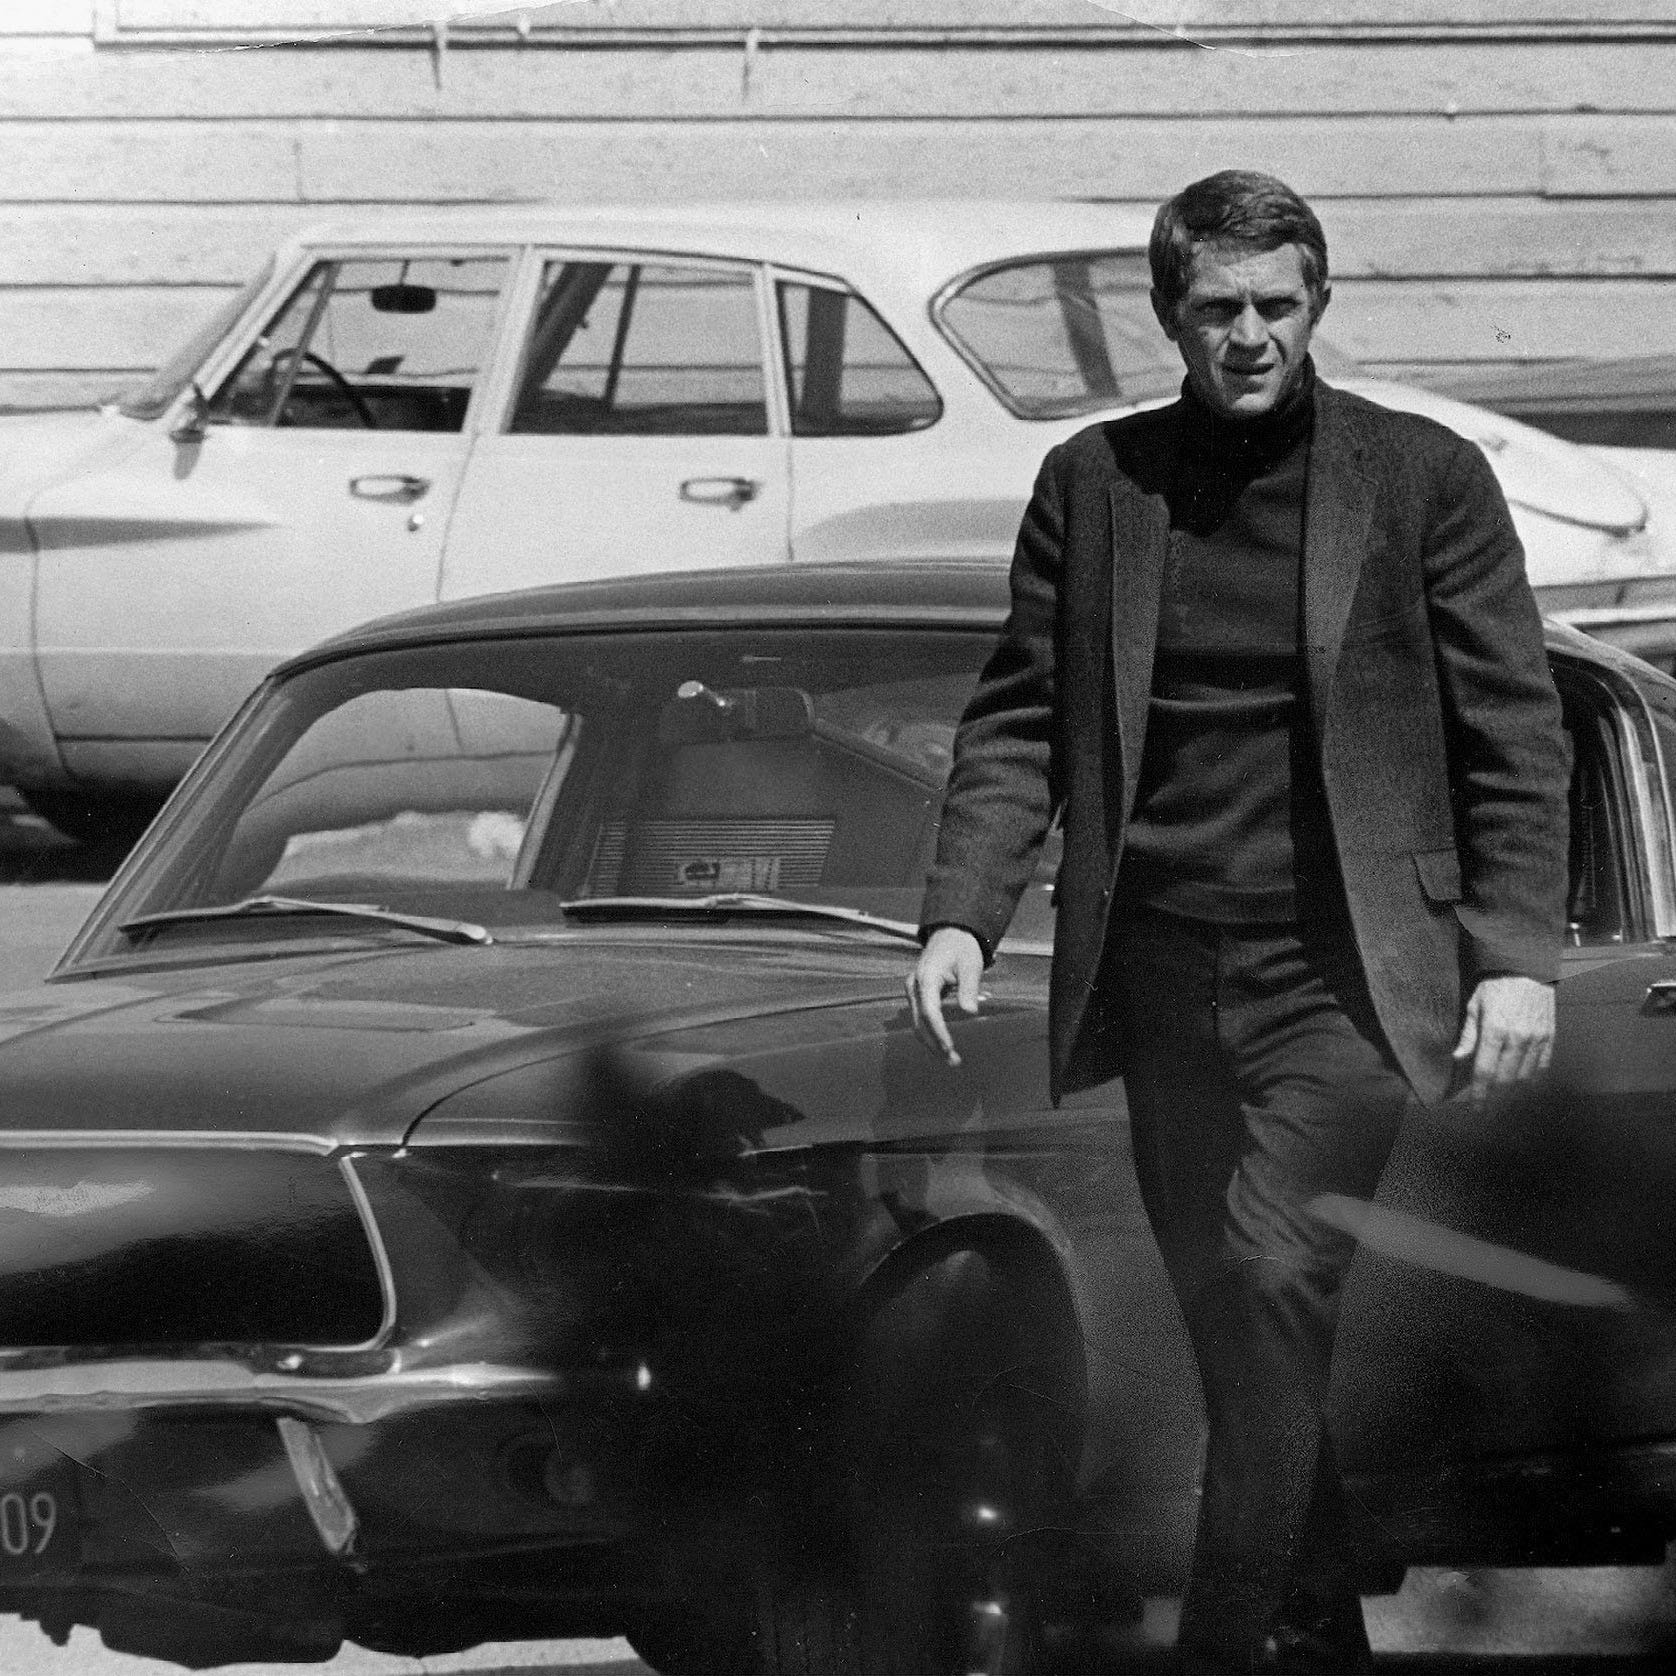 'Bullitt' screenwriter wants to drive the Mustang model 'I invented'